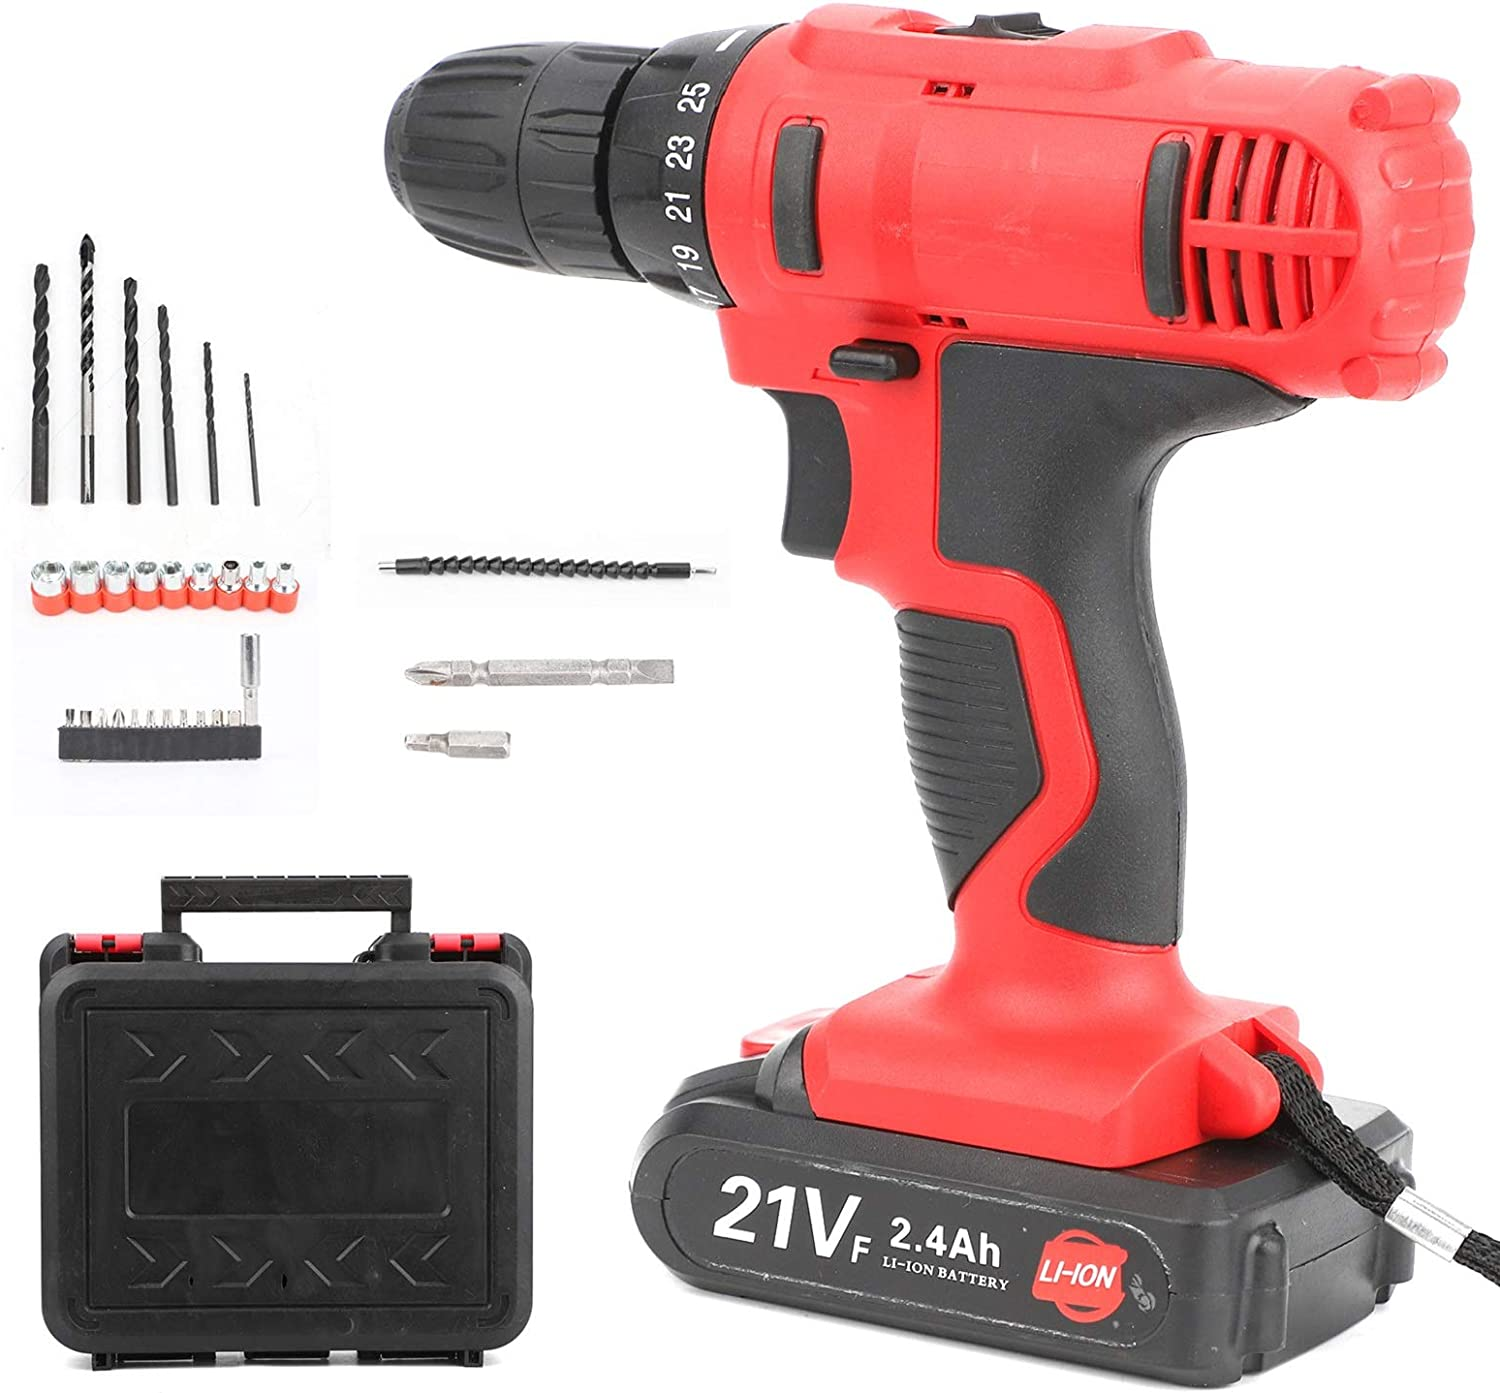 ColdShine 21V Cordless Combination Drill Dual Speed Lithium Ion Fast Charging Electric Screwdriver Rechargeable Cordless Drill Driver Combination Electric Drill Compound Drill Bit